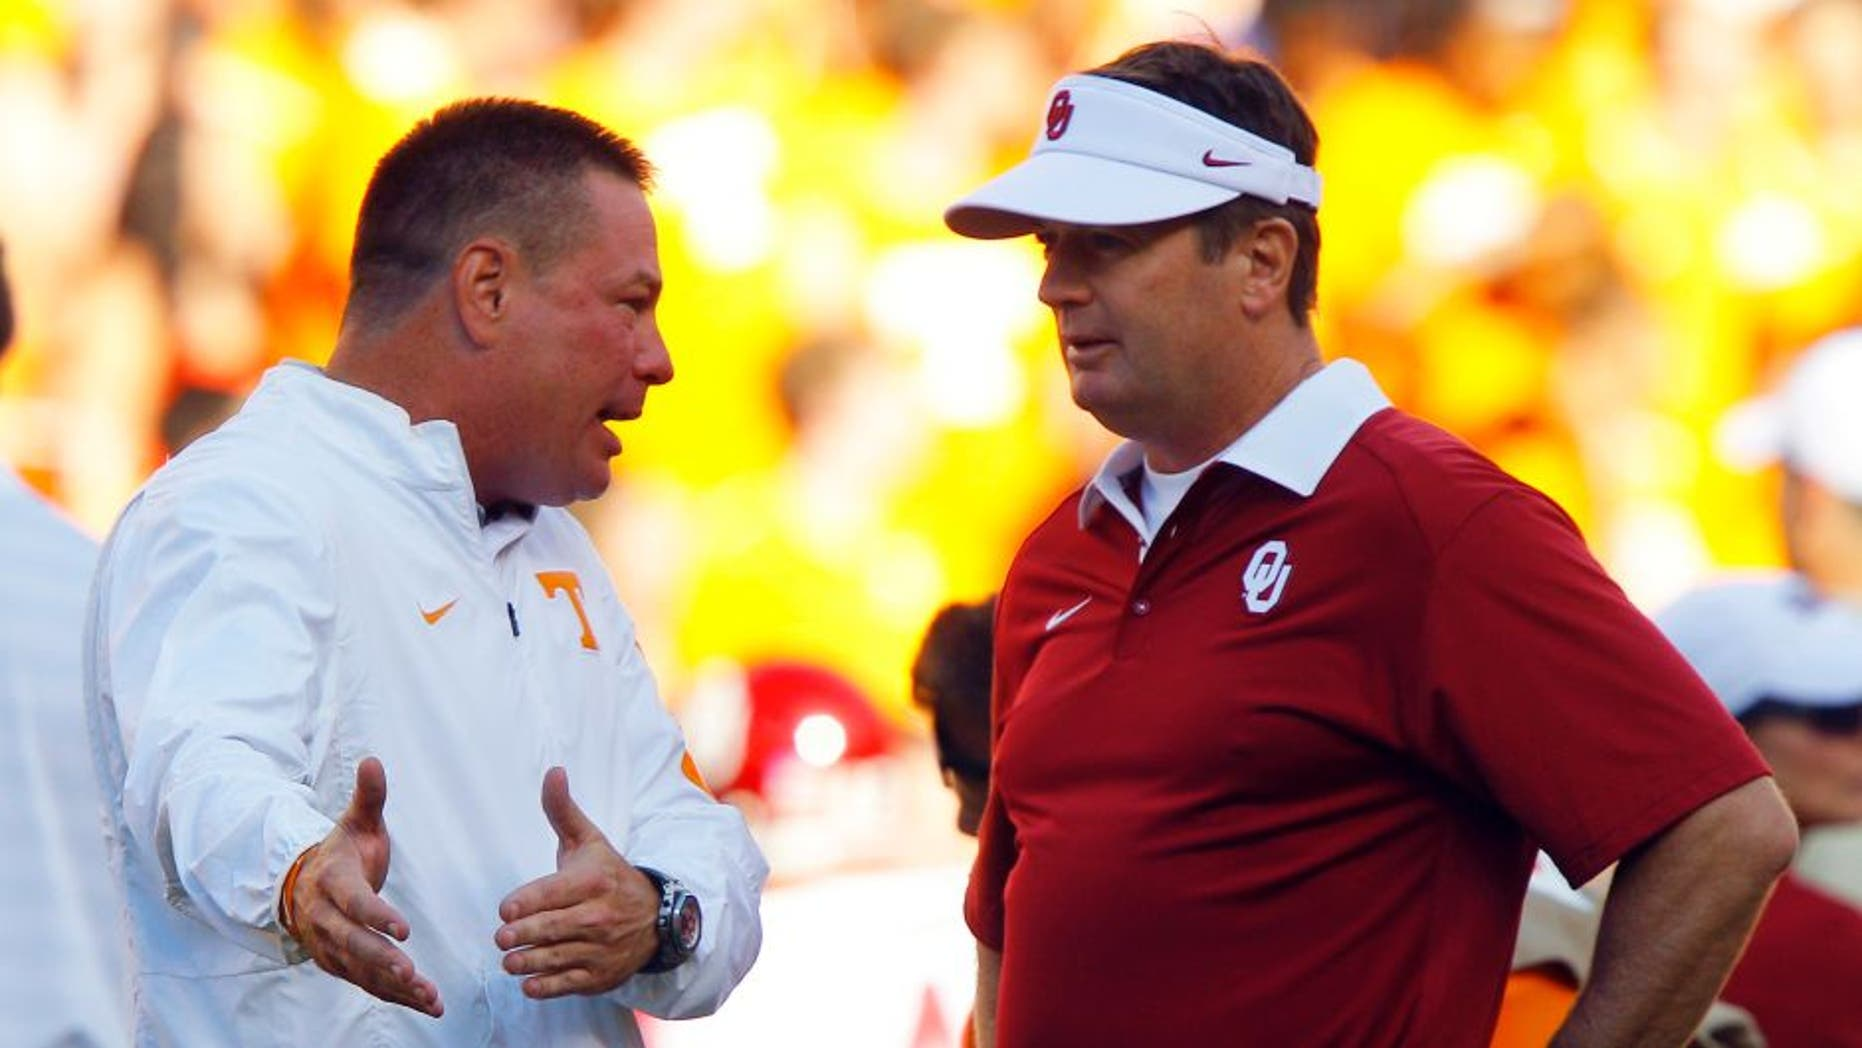 Tennessee head coach Butch Jones, left, talks with Oklahoma head coach Bob Stoops before an NCAA college football game, Saturday, Sept. 12, 2015 in Knoxville, Tenn. (AP Photo/Wade Payne)